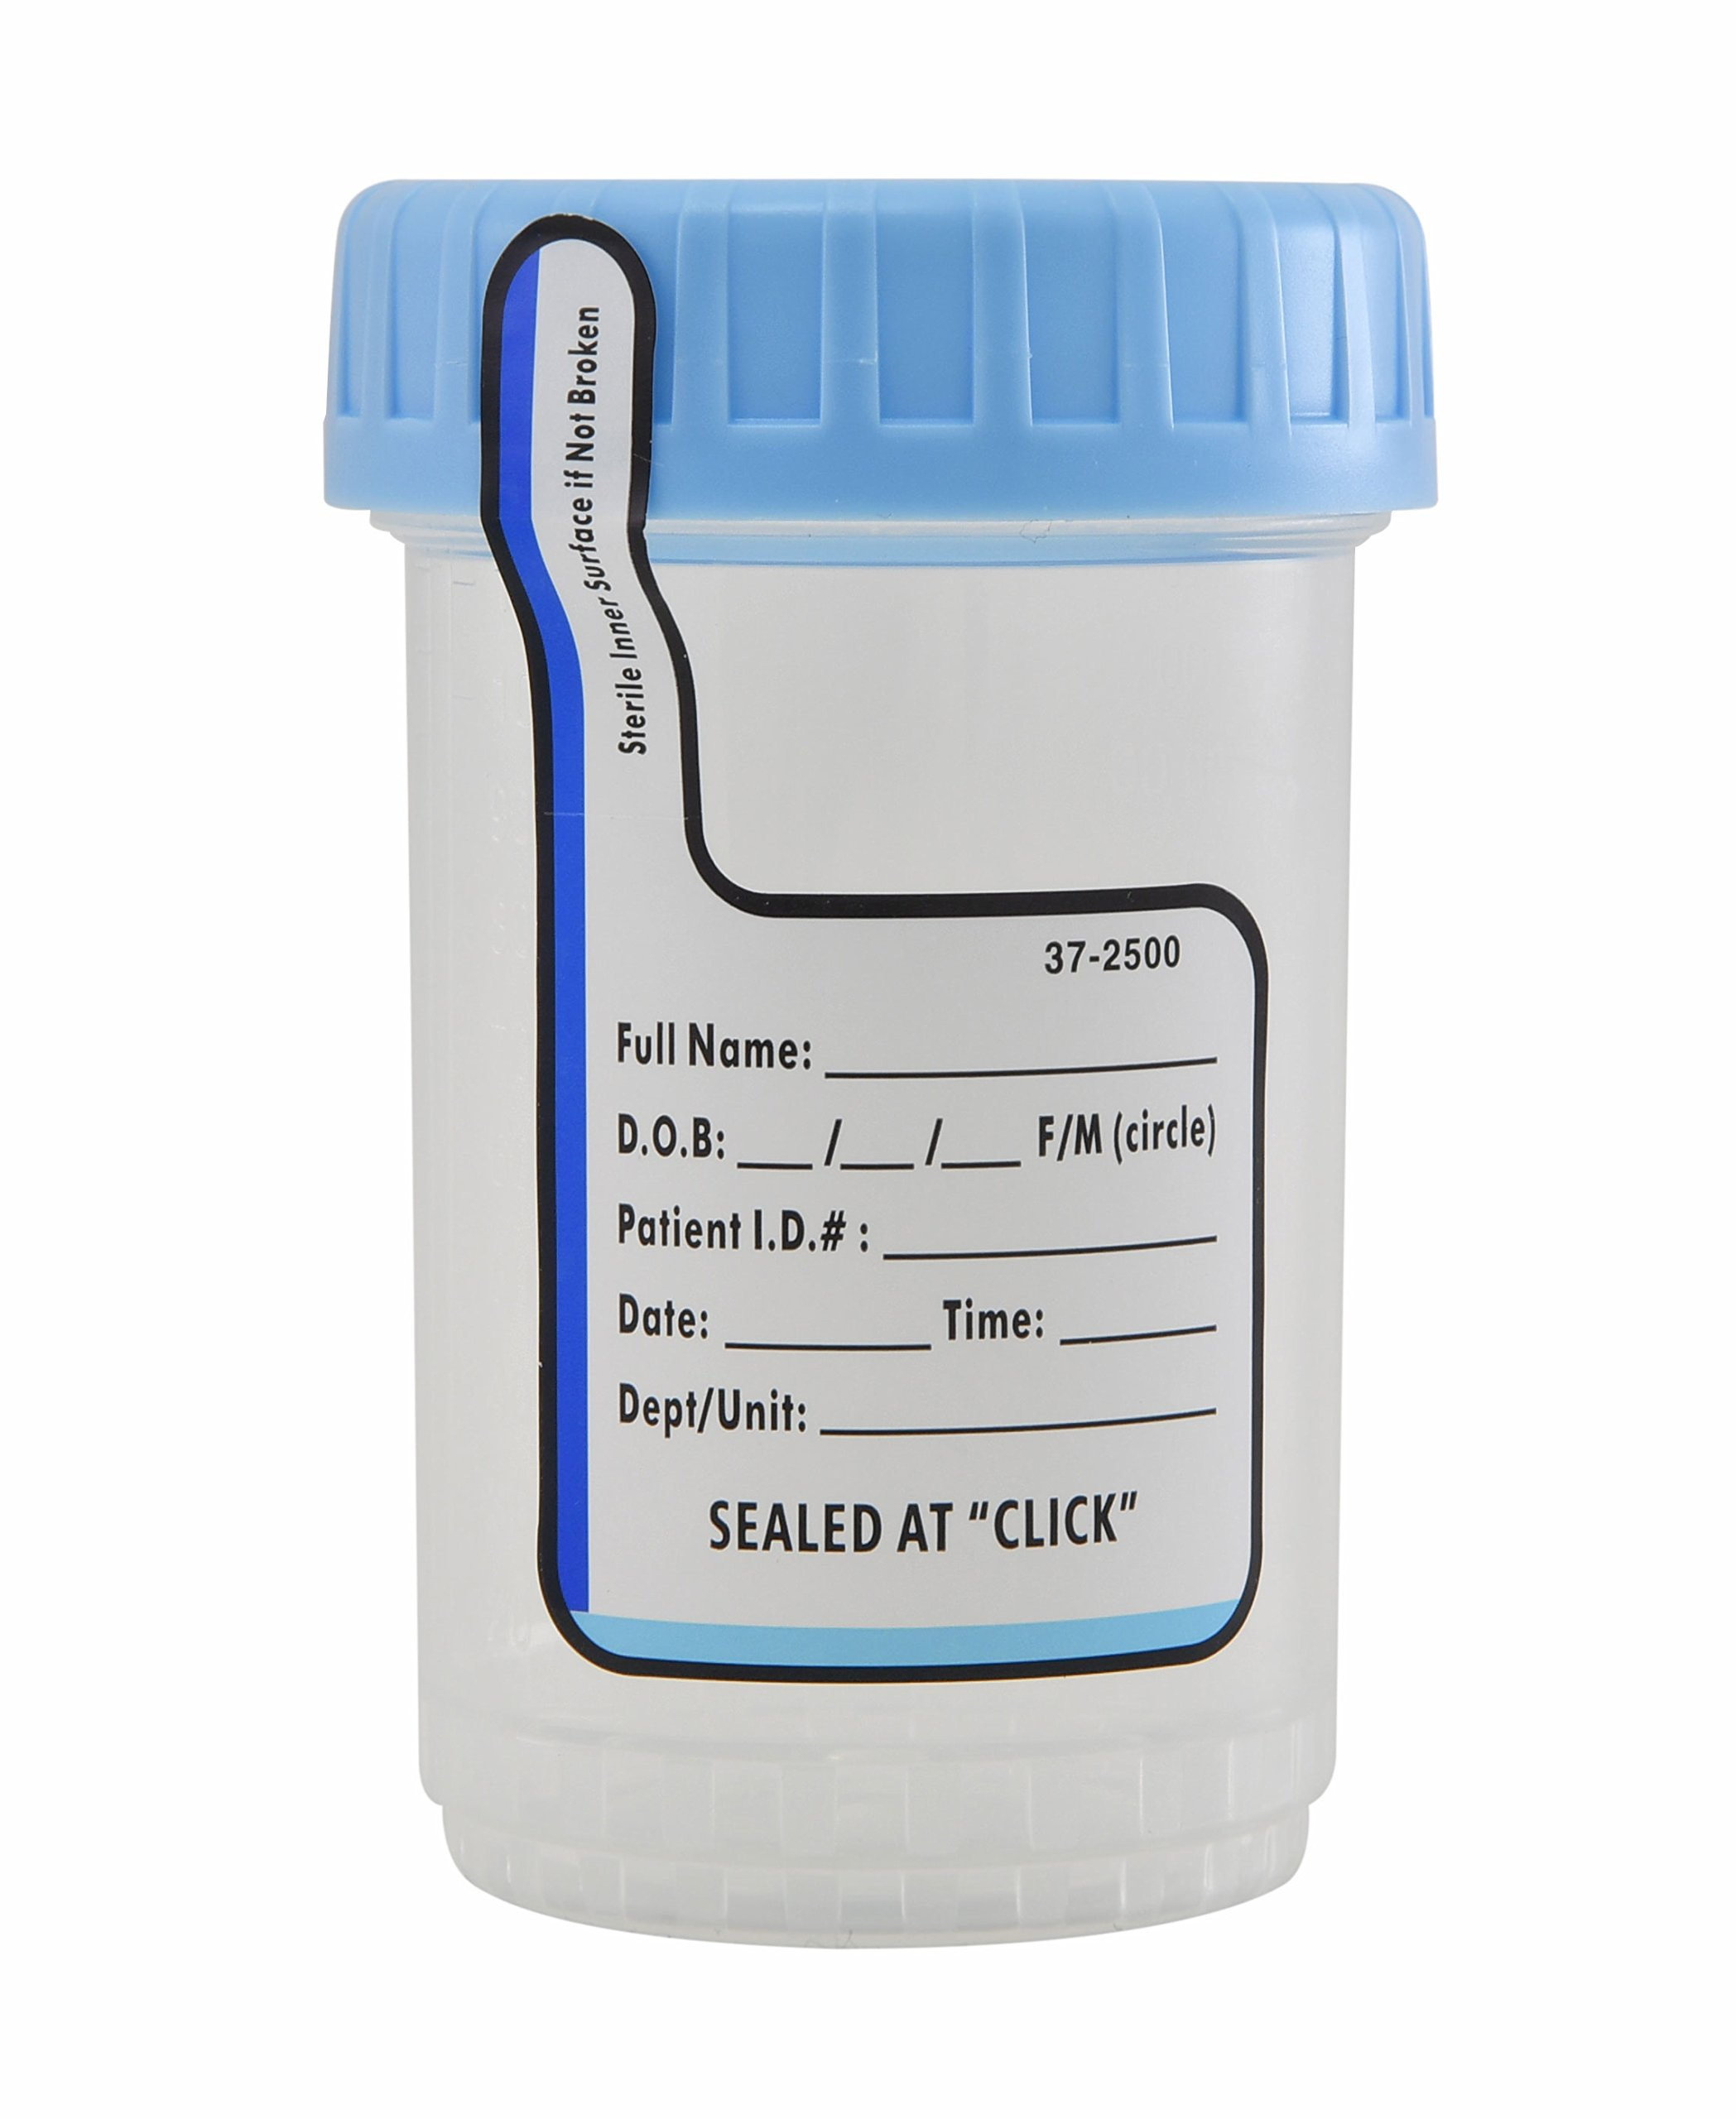 Medegen Medical Products PC4090-400S ClikSeal Container, 90 cc Capacity, Sterile (Pack of 400)